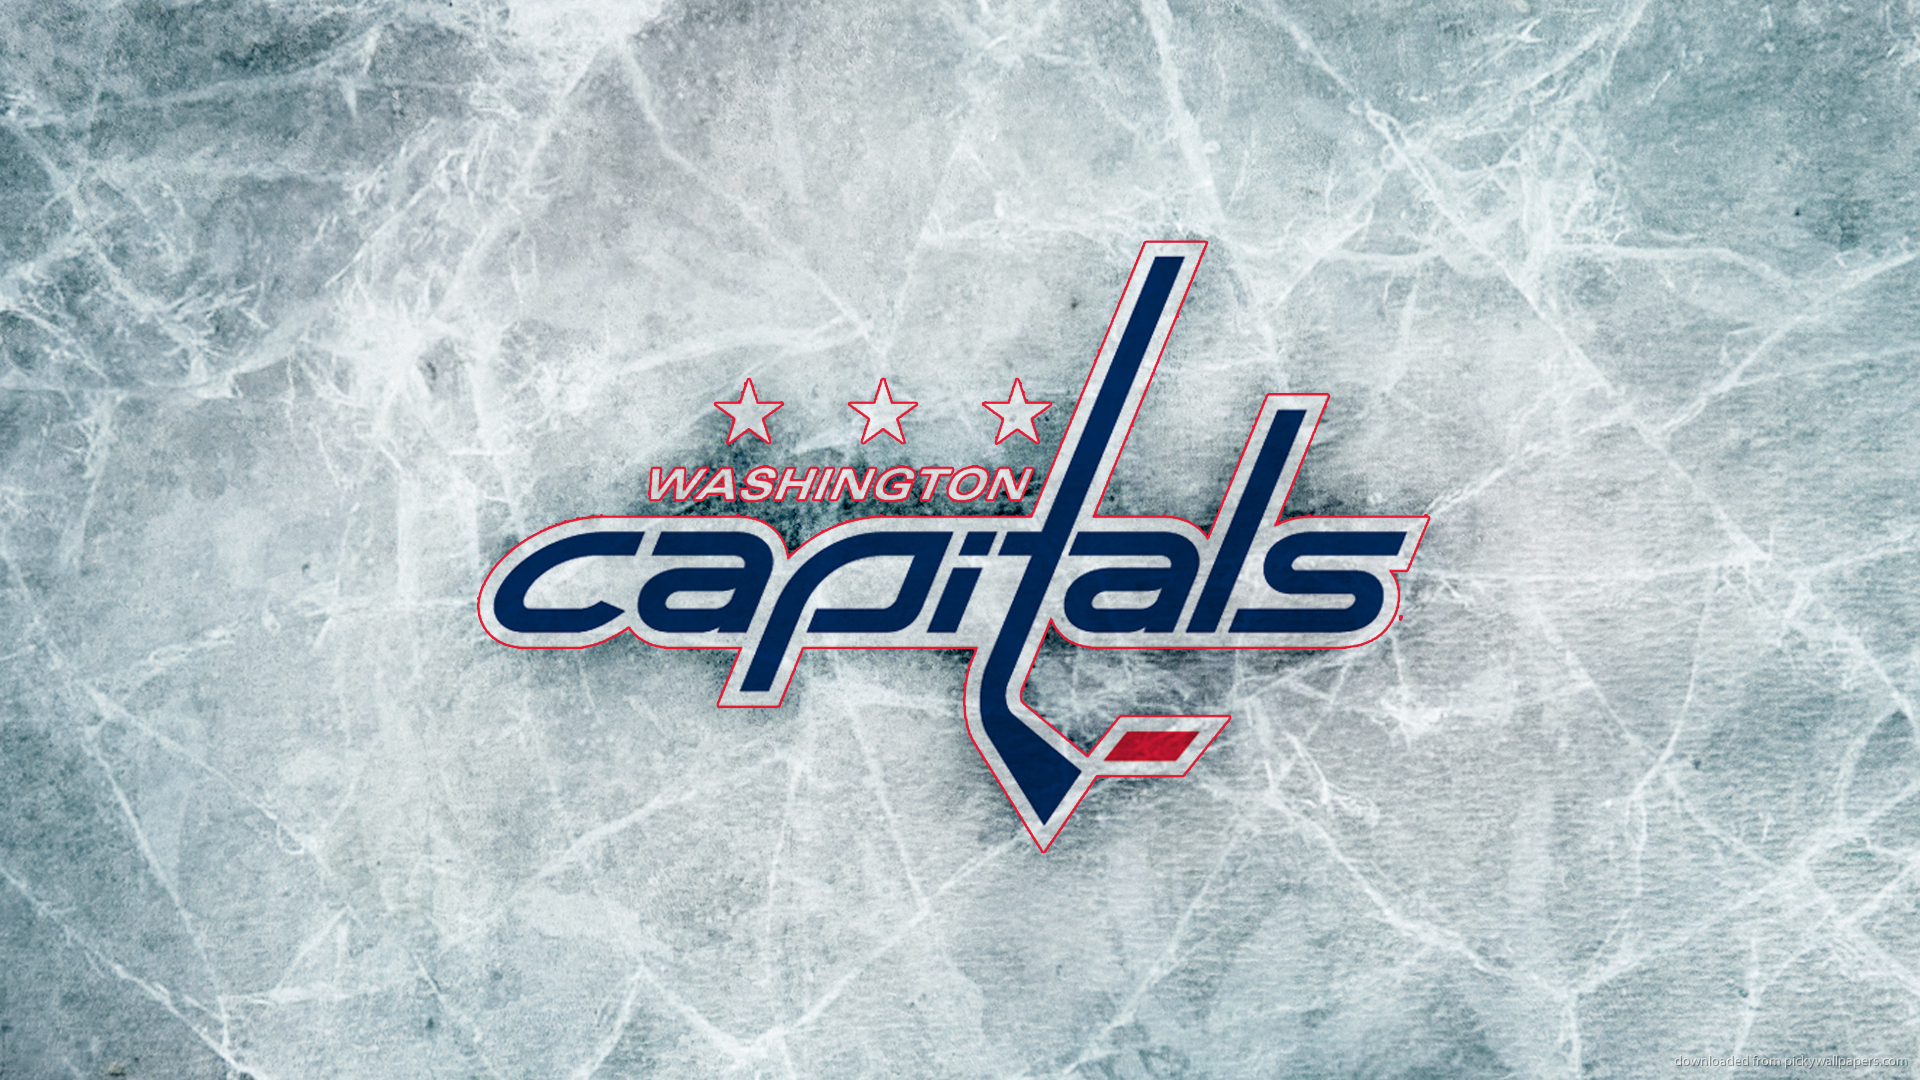 Washington Capitals logo picture 1920x1080